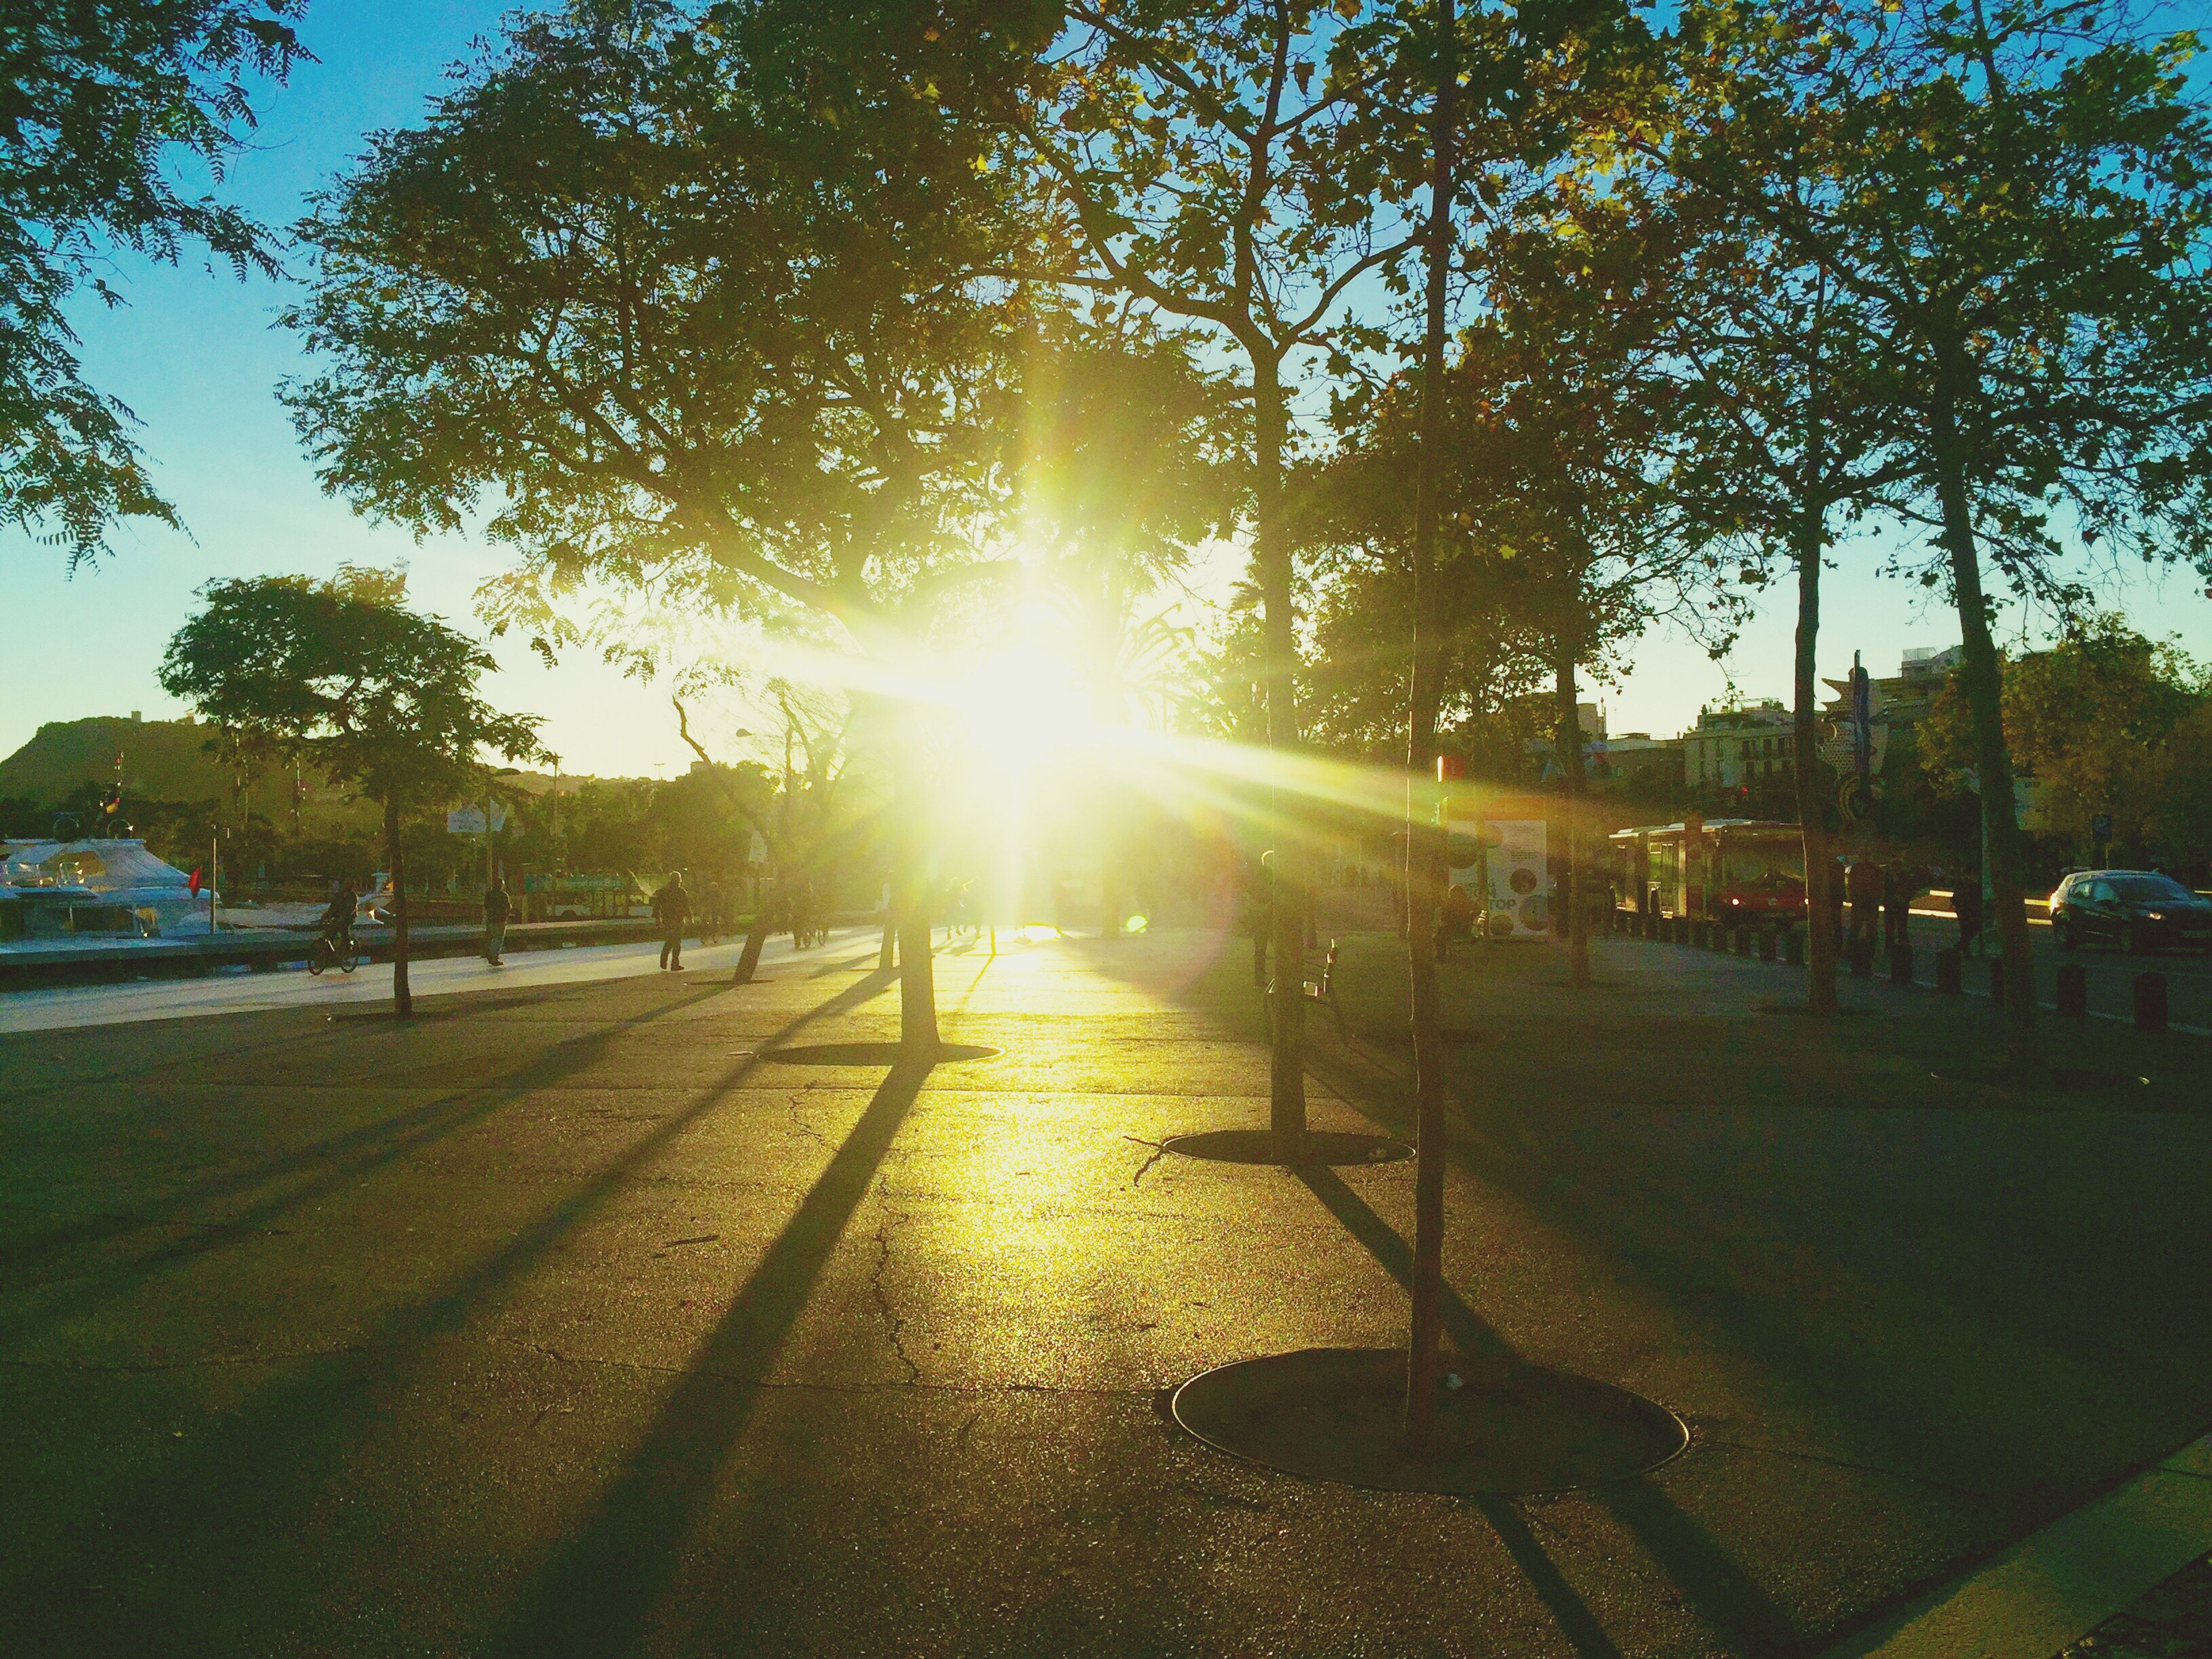 tree, sunlight, lens flare, sunbeam, sun, outdoors, nature, sunset, growth, sky, beauty in nature, day, no people